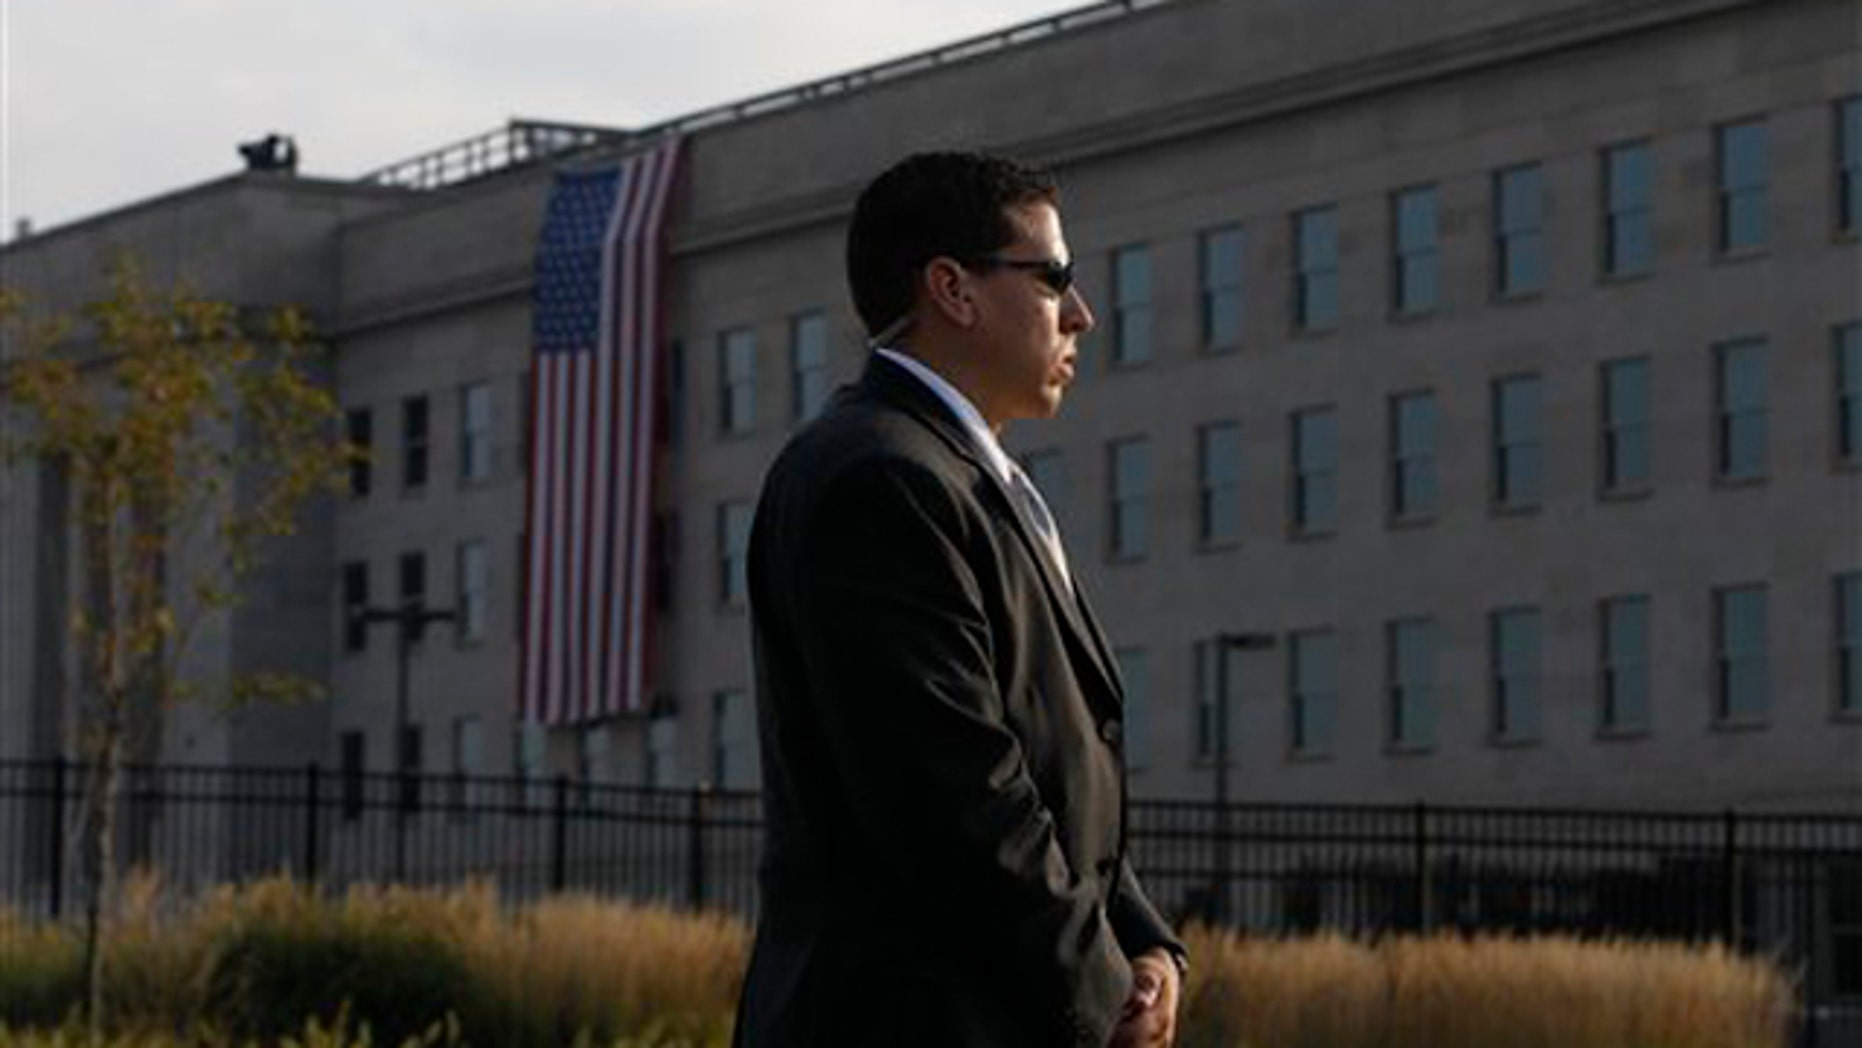 A U.S. Secret Service agent stands watch outside the Pentagon before the start of ceremonies for the 10th commemoration of the Sept. 11 attacks.